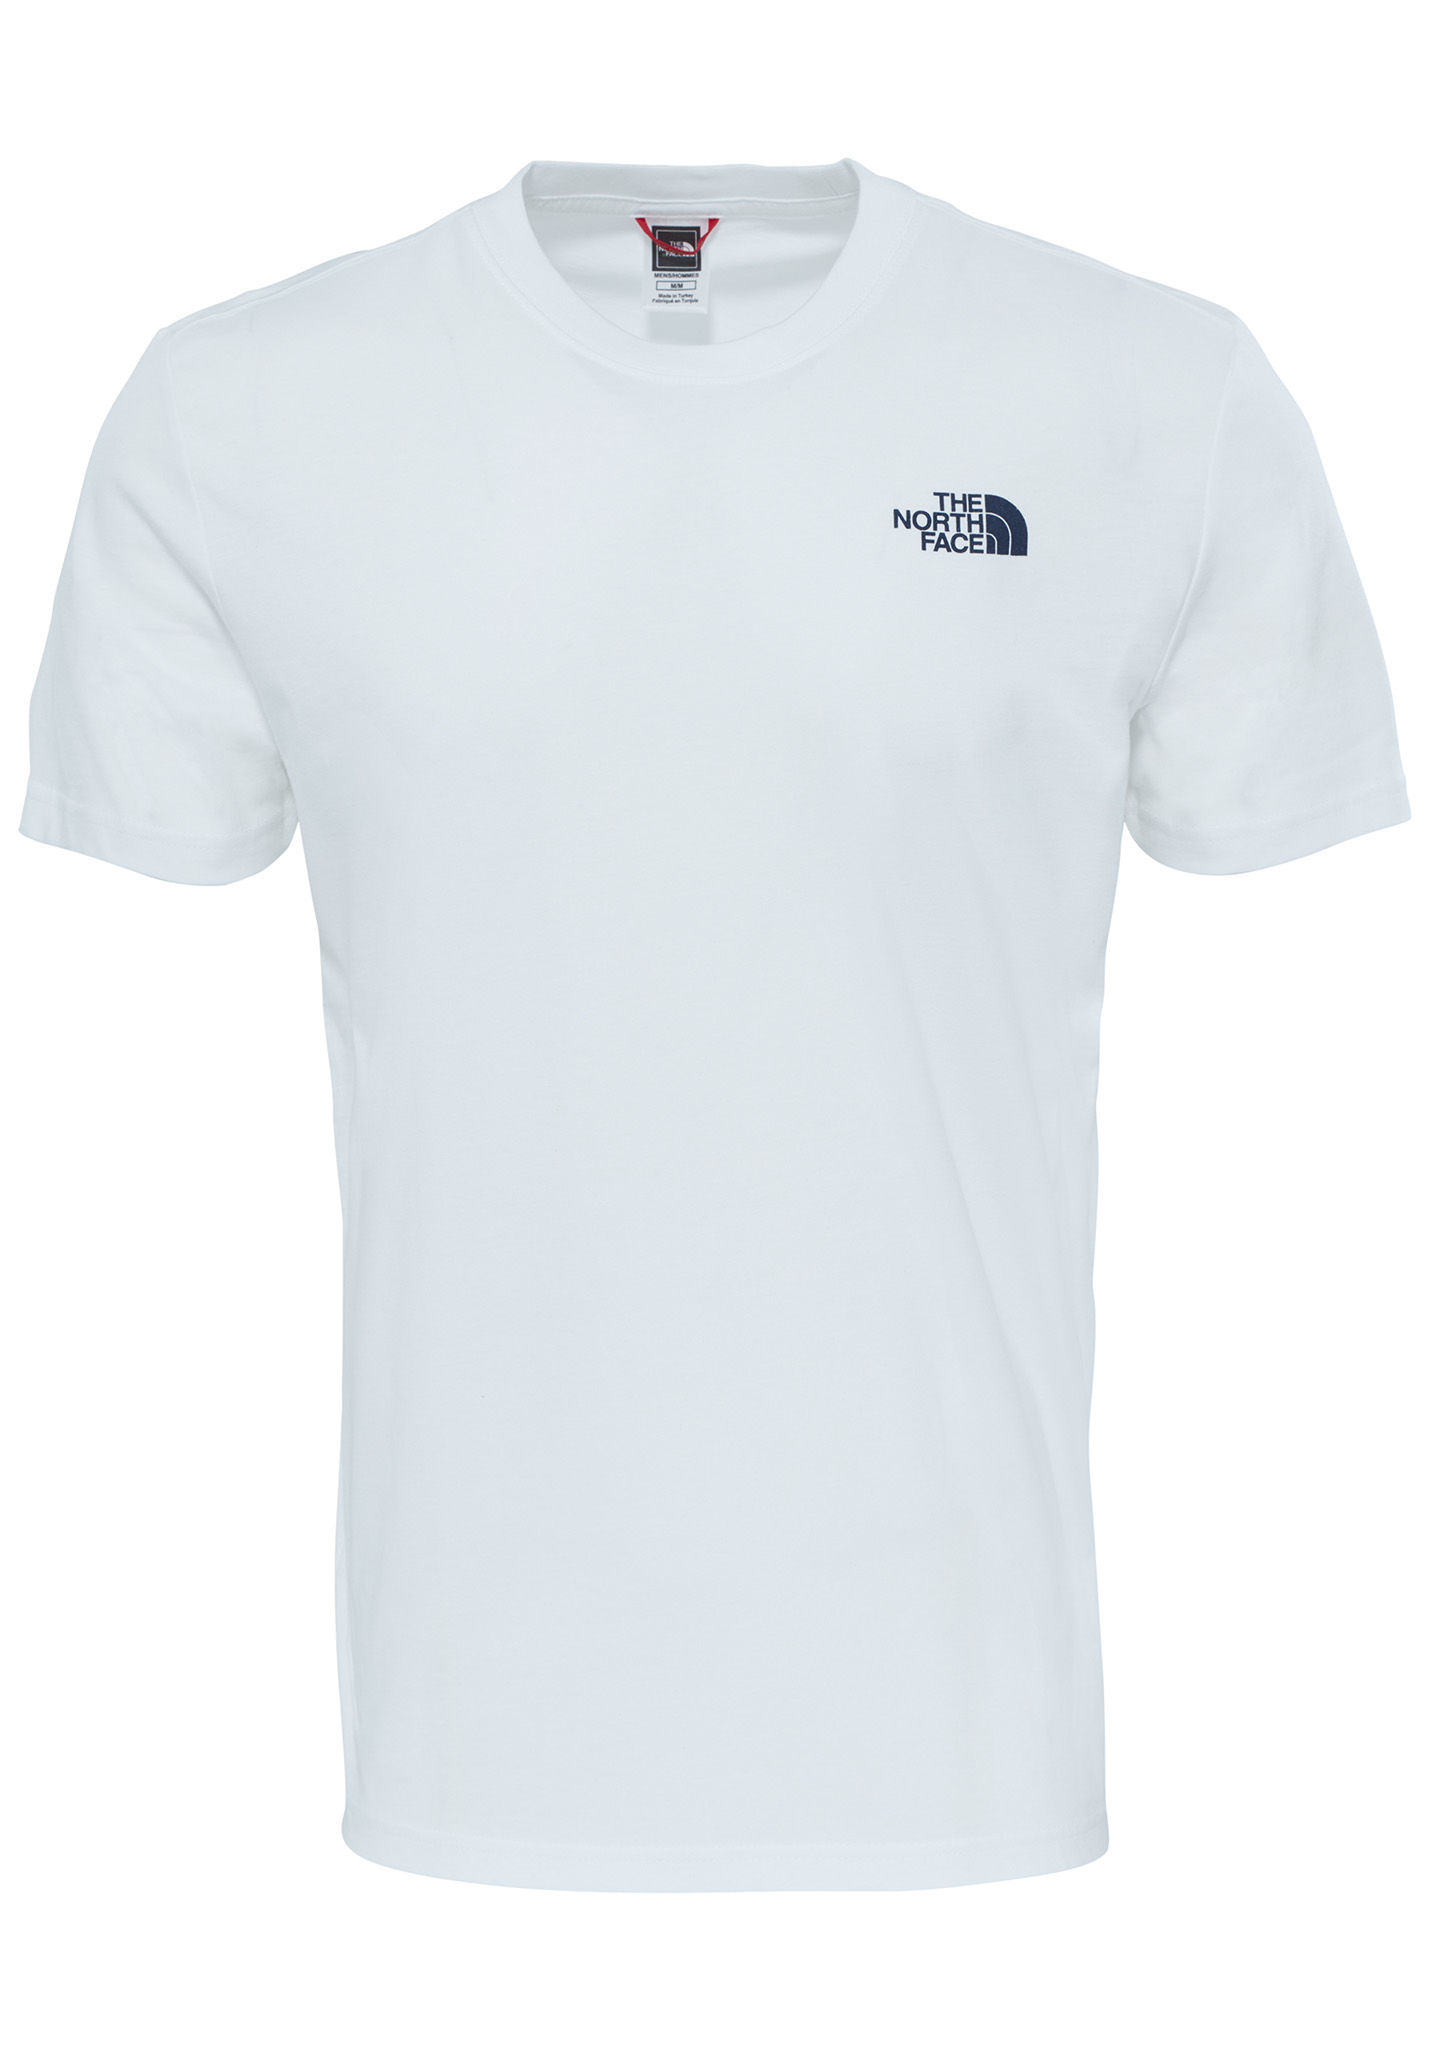 c0f55642 THE NORTH FACE Redbox Celebration - T-Shirt for Men - Blue - Planet ...